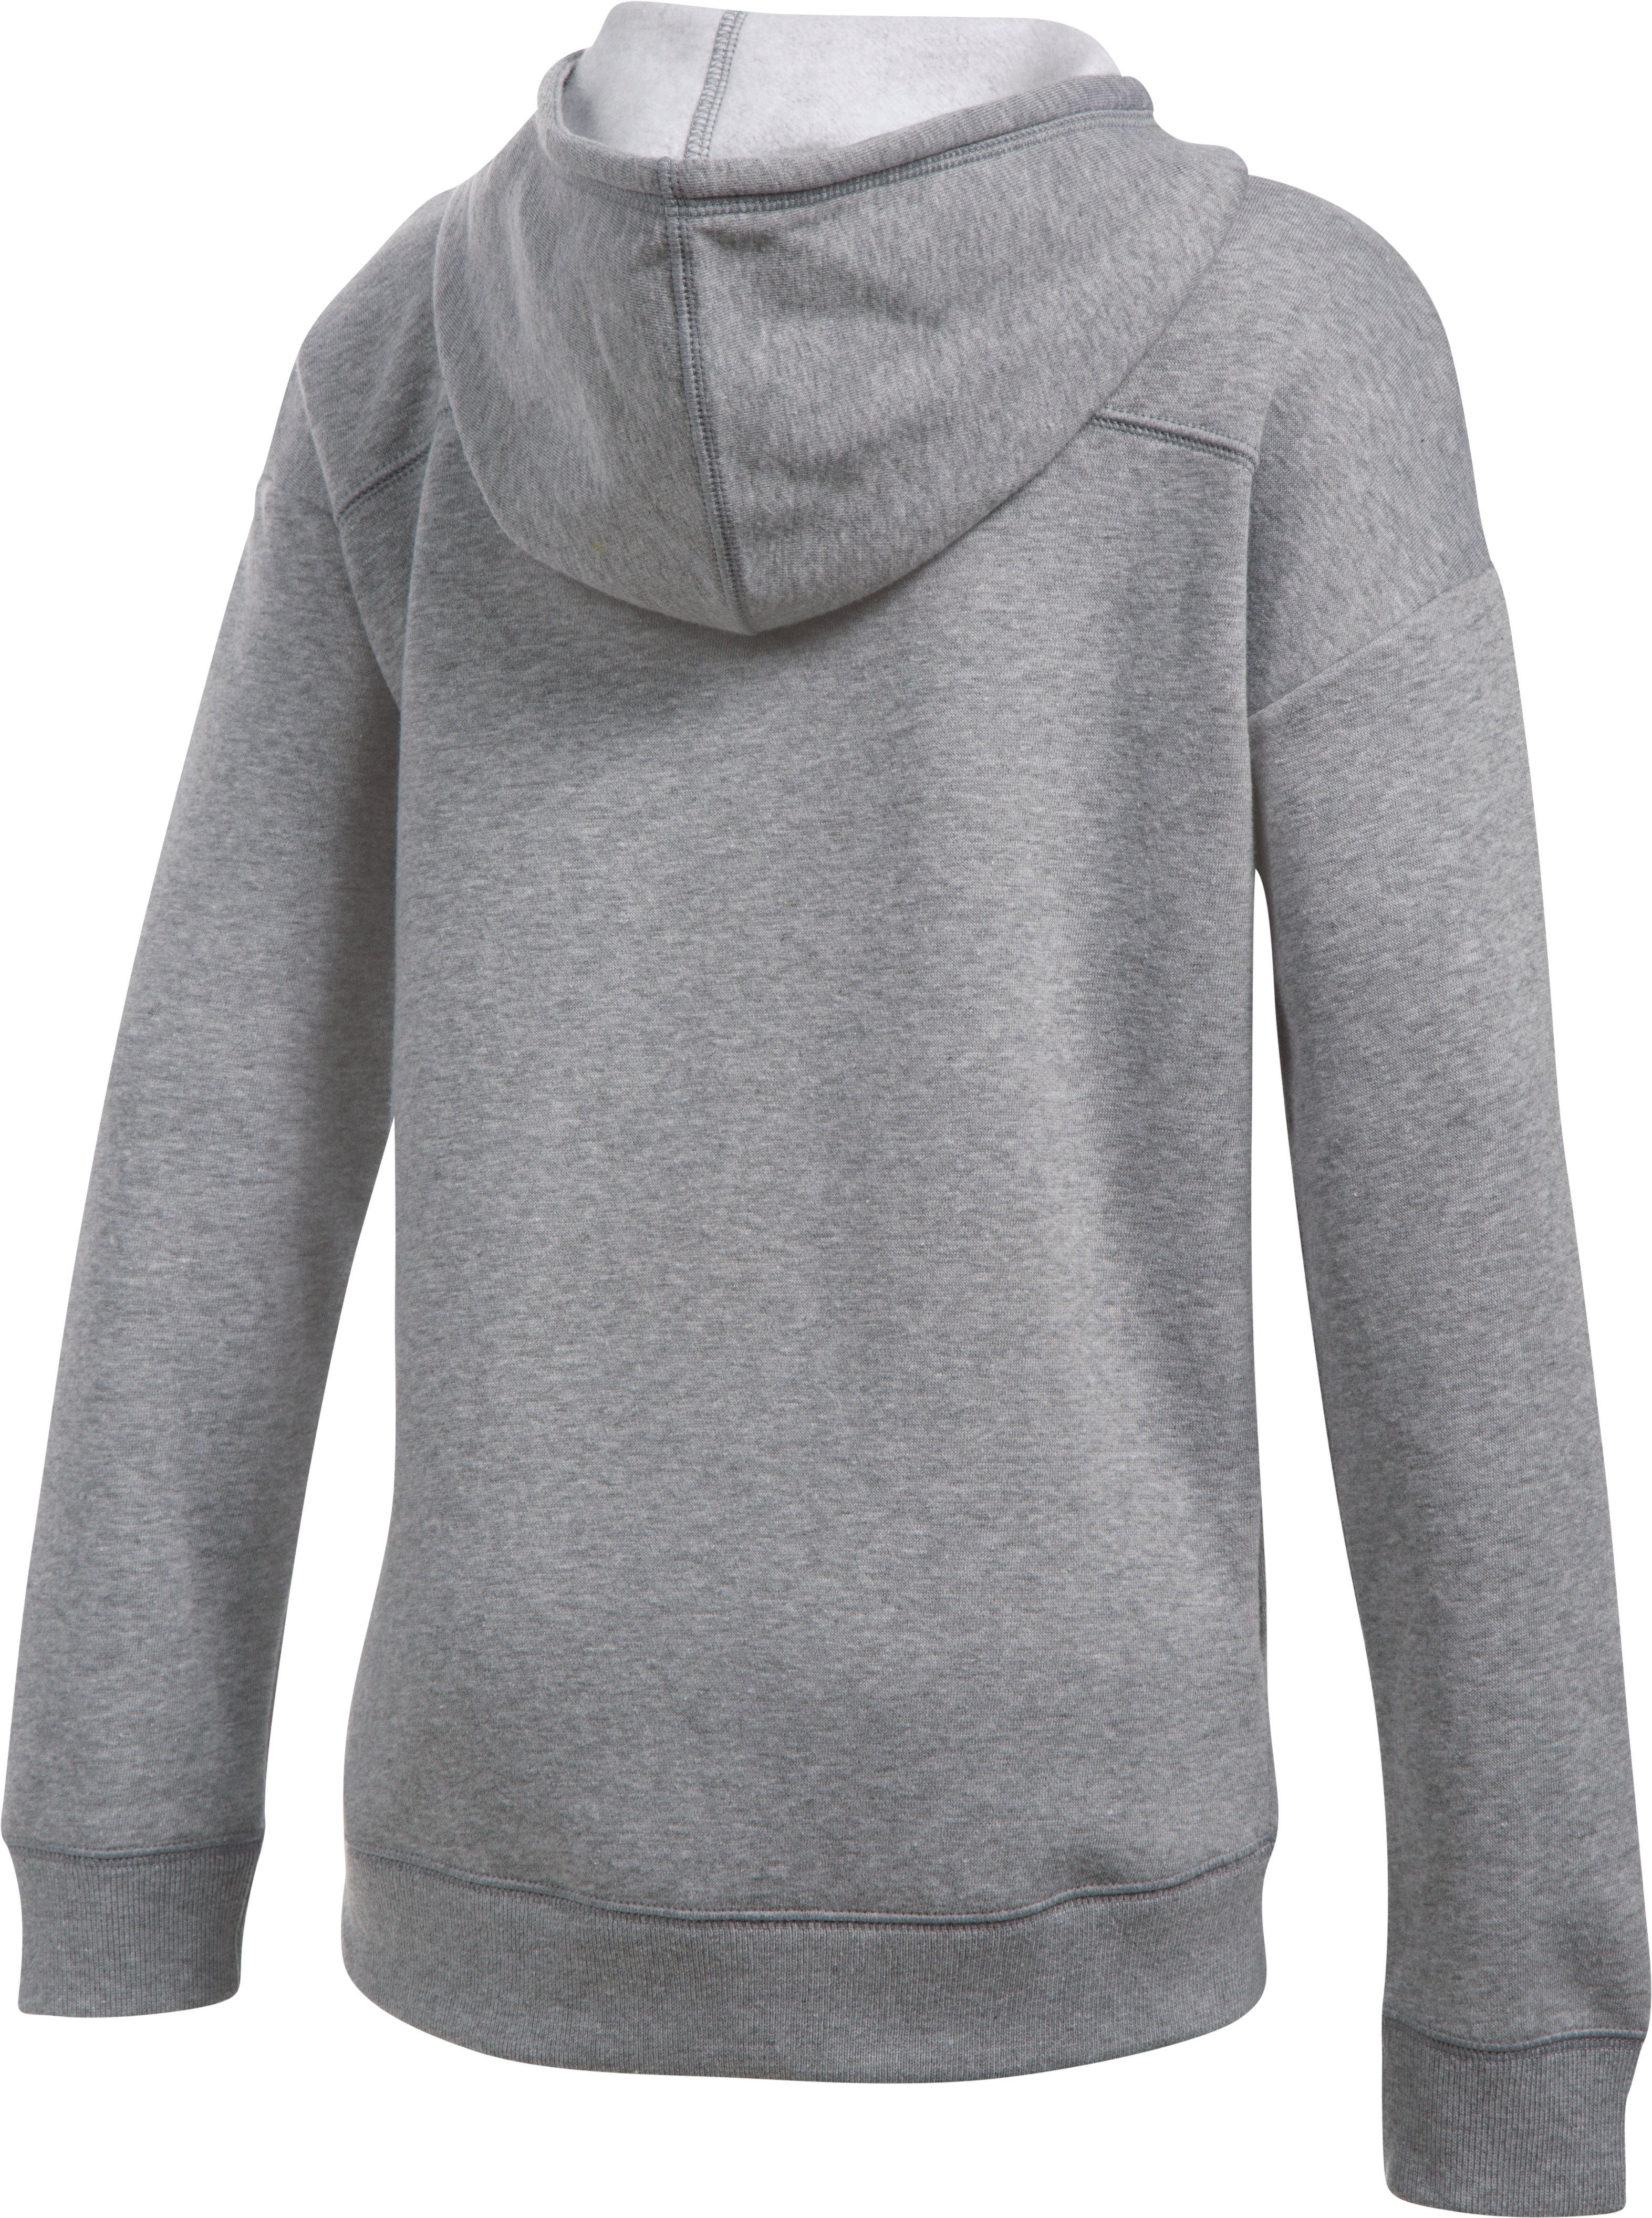 Girls' UA Favorite Full Zip Hoodie, True Gray Heather, undefined